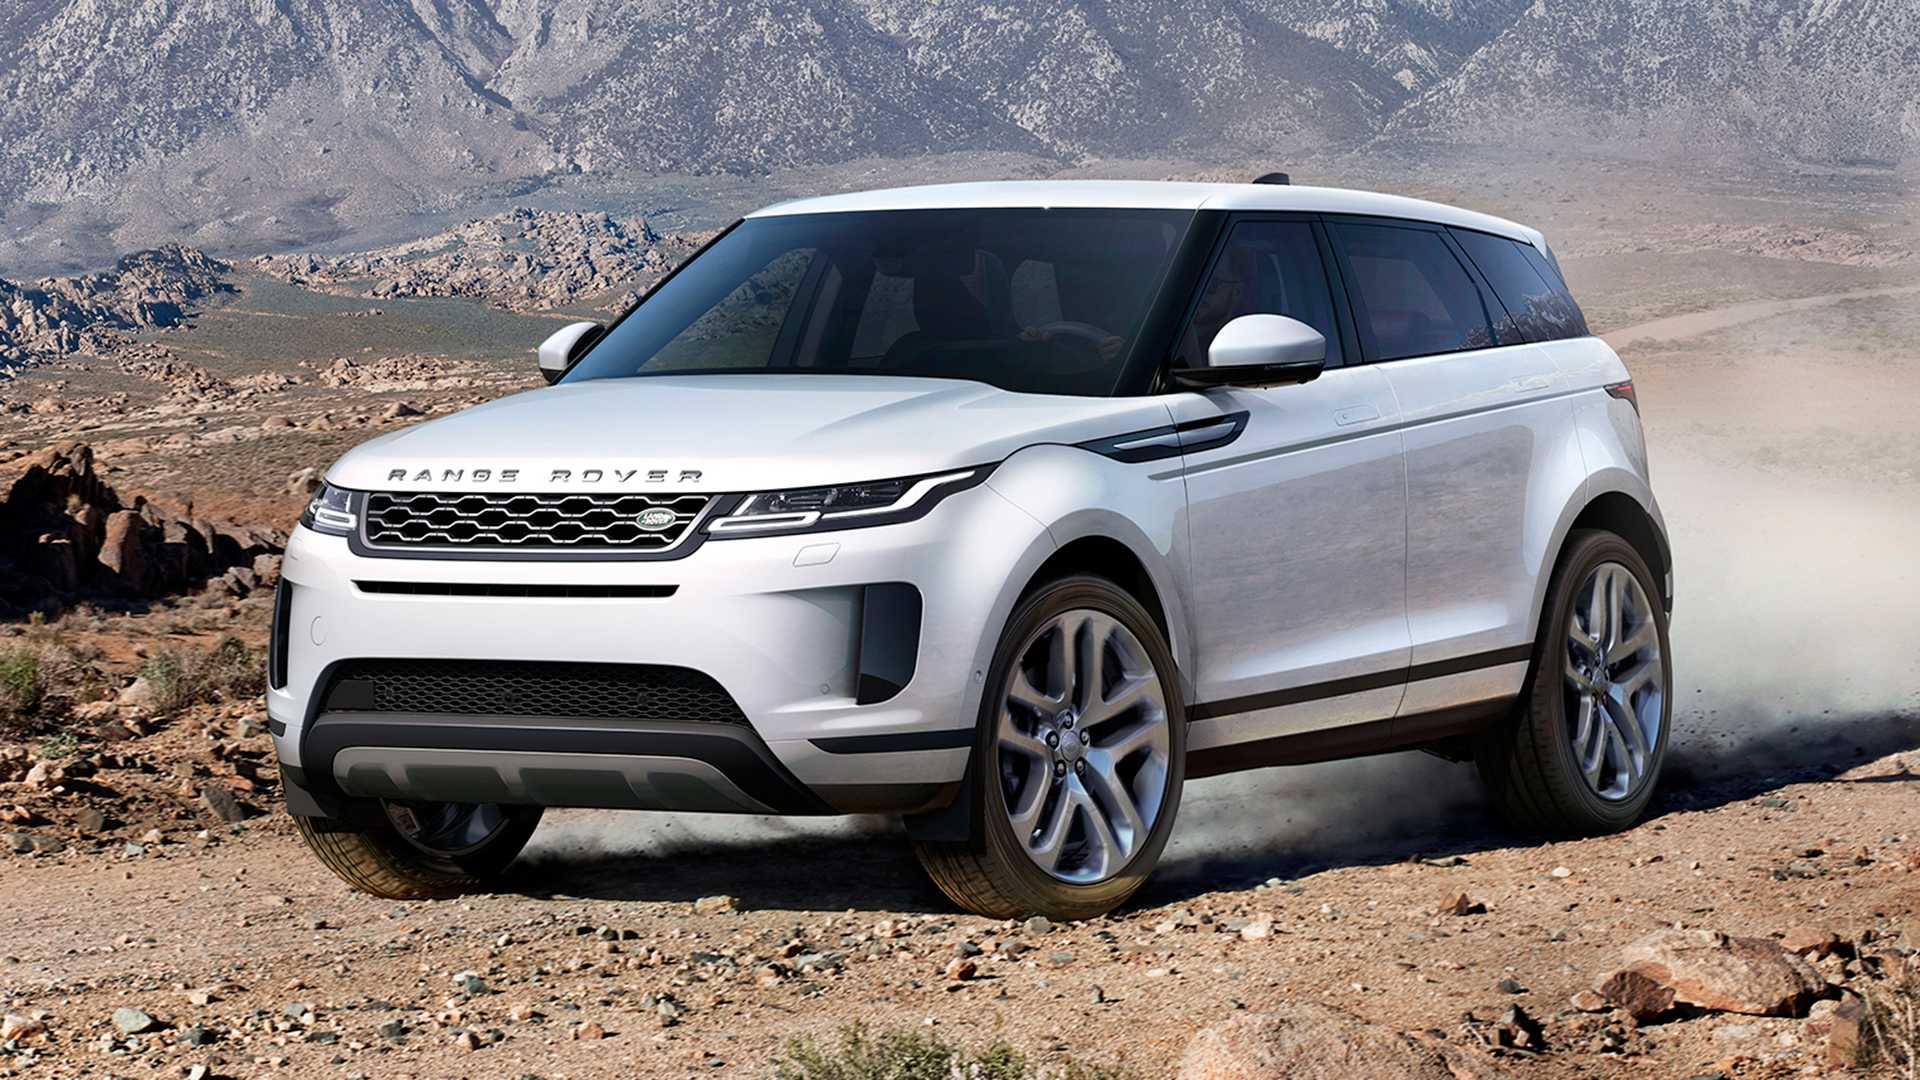 13 Concept of 2020 Land Rover Range Rover Speed Test with 2020 Land Rover Range Rover